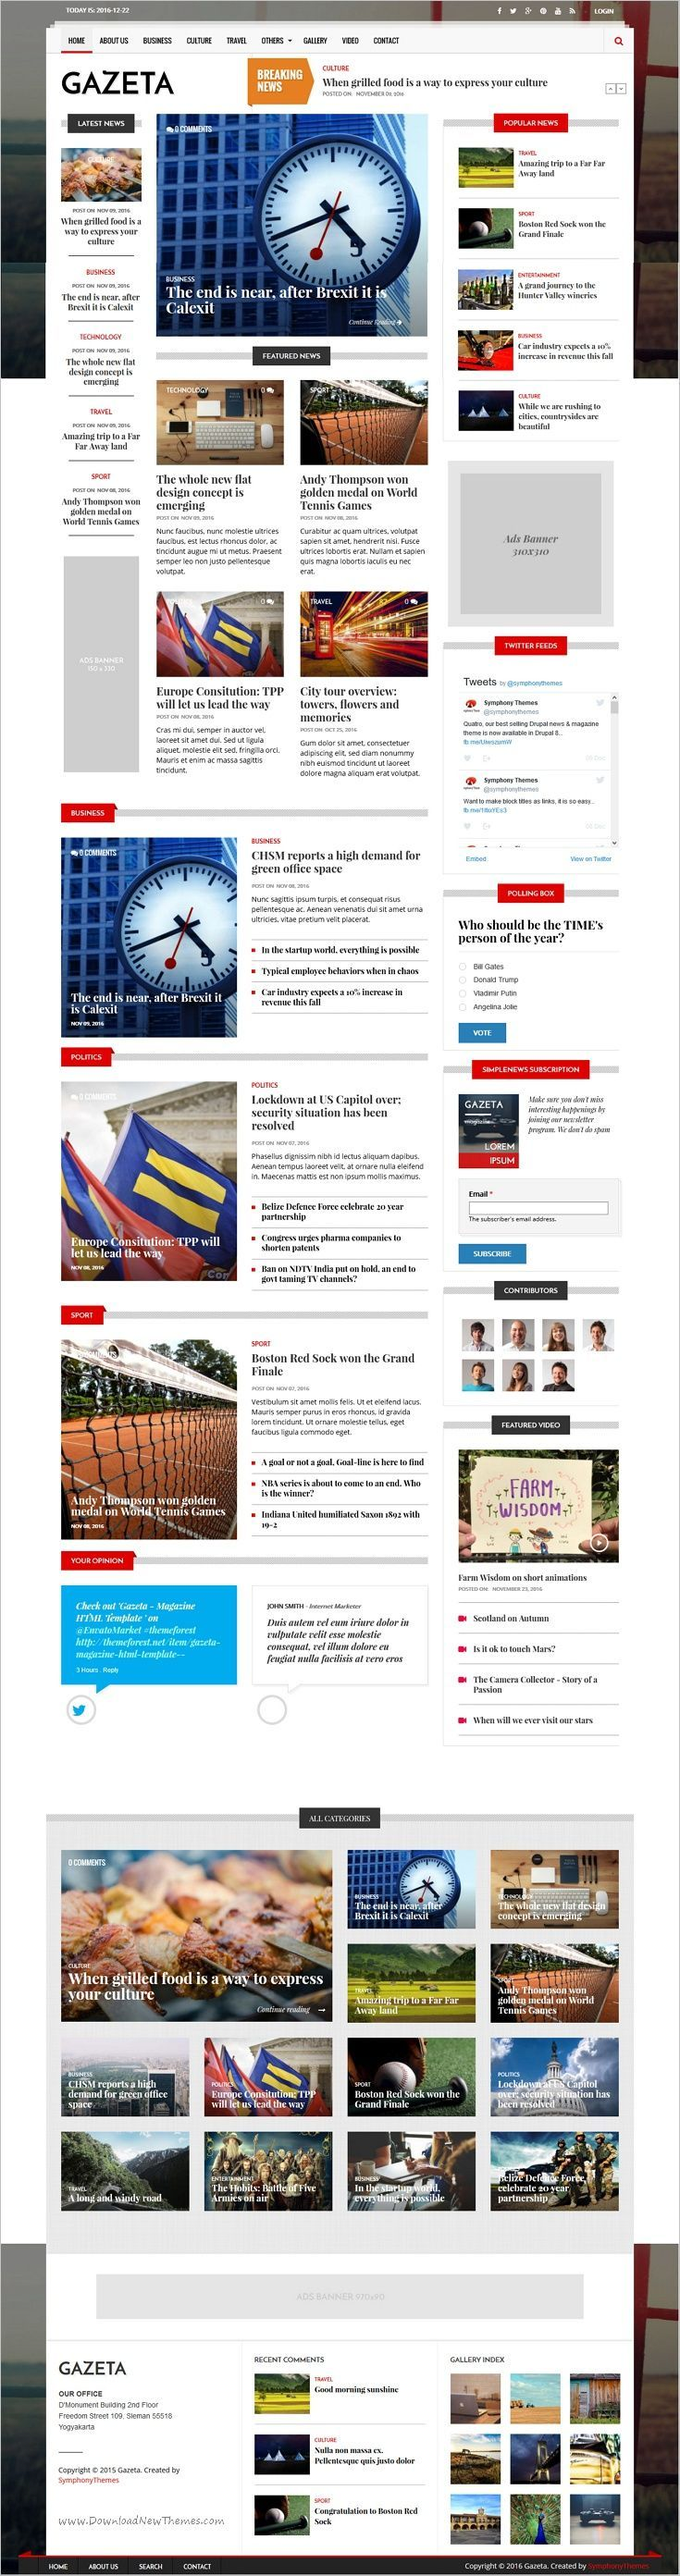 SymphonyThemes - Gazeta News Magazine Drupal Theme - An impressive Drupal theme for your news & magazine websites. Powered by Drupal 8, it has the latest technology and ongoing updates from the strong Drupal community.